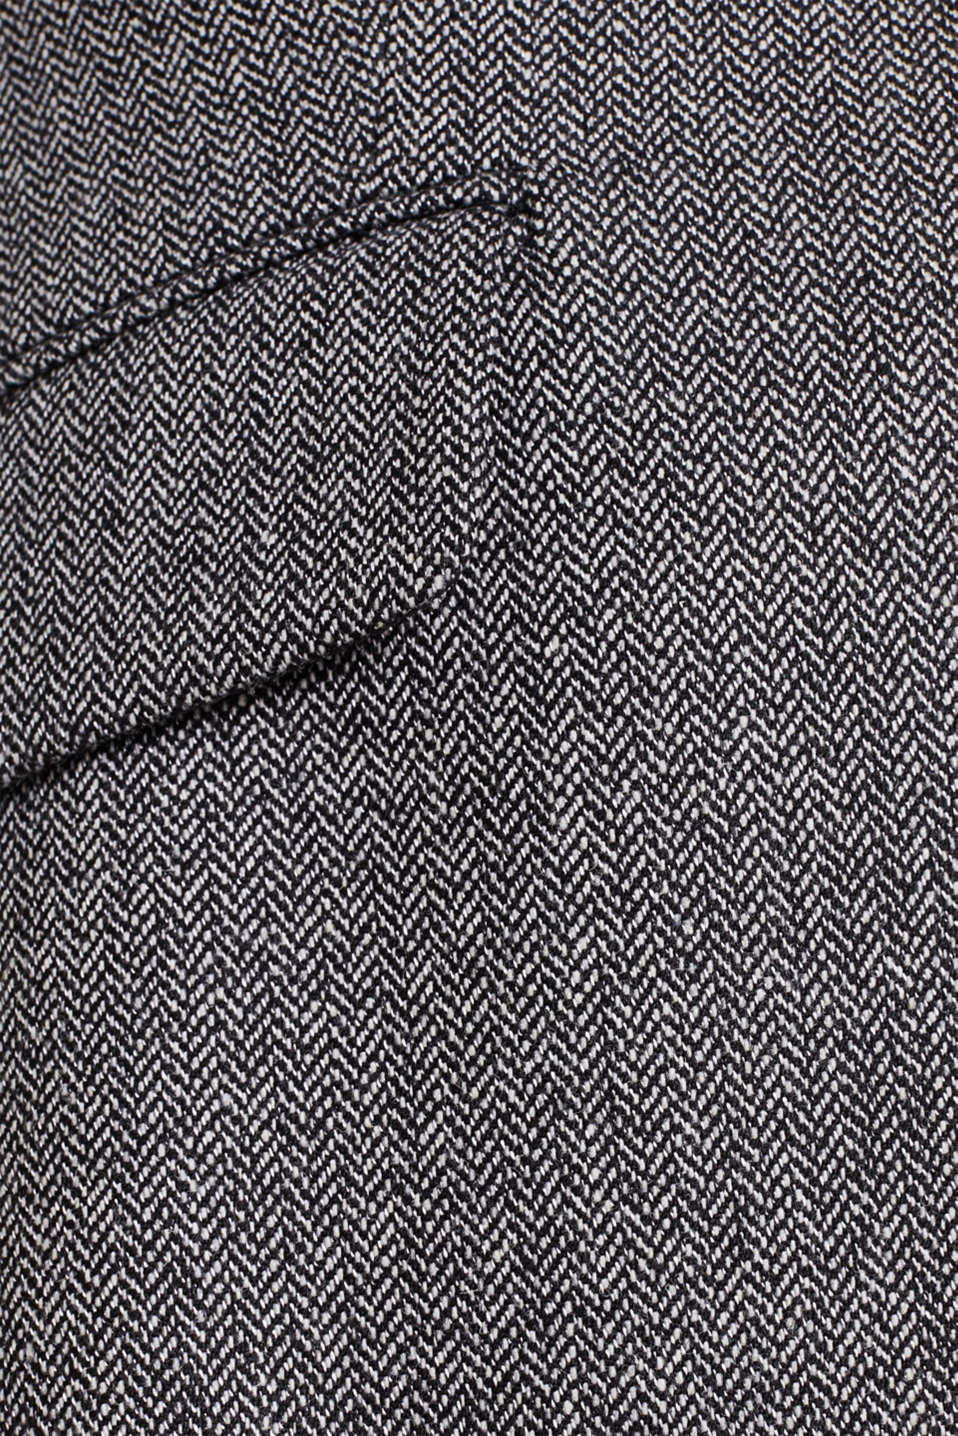 Wool blend: stretch blazer with a herringbone pattern, BLACK, detail image number 4